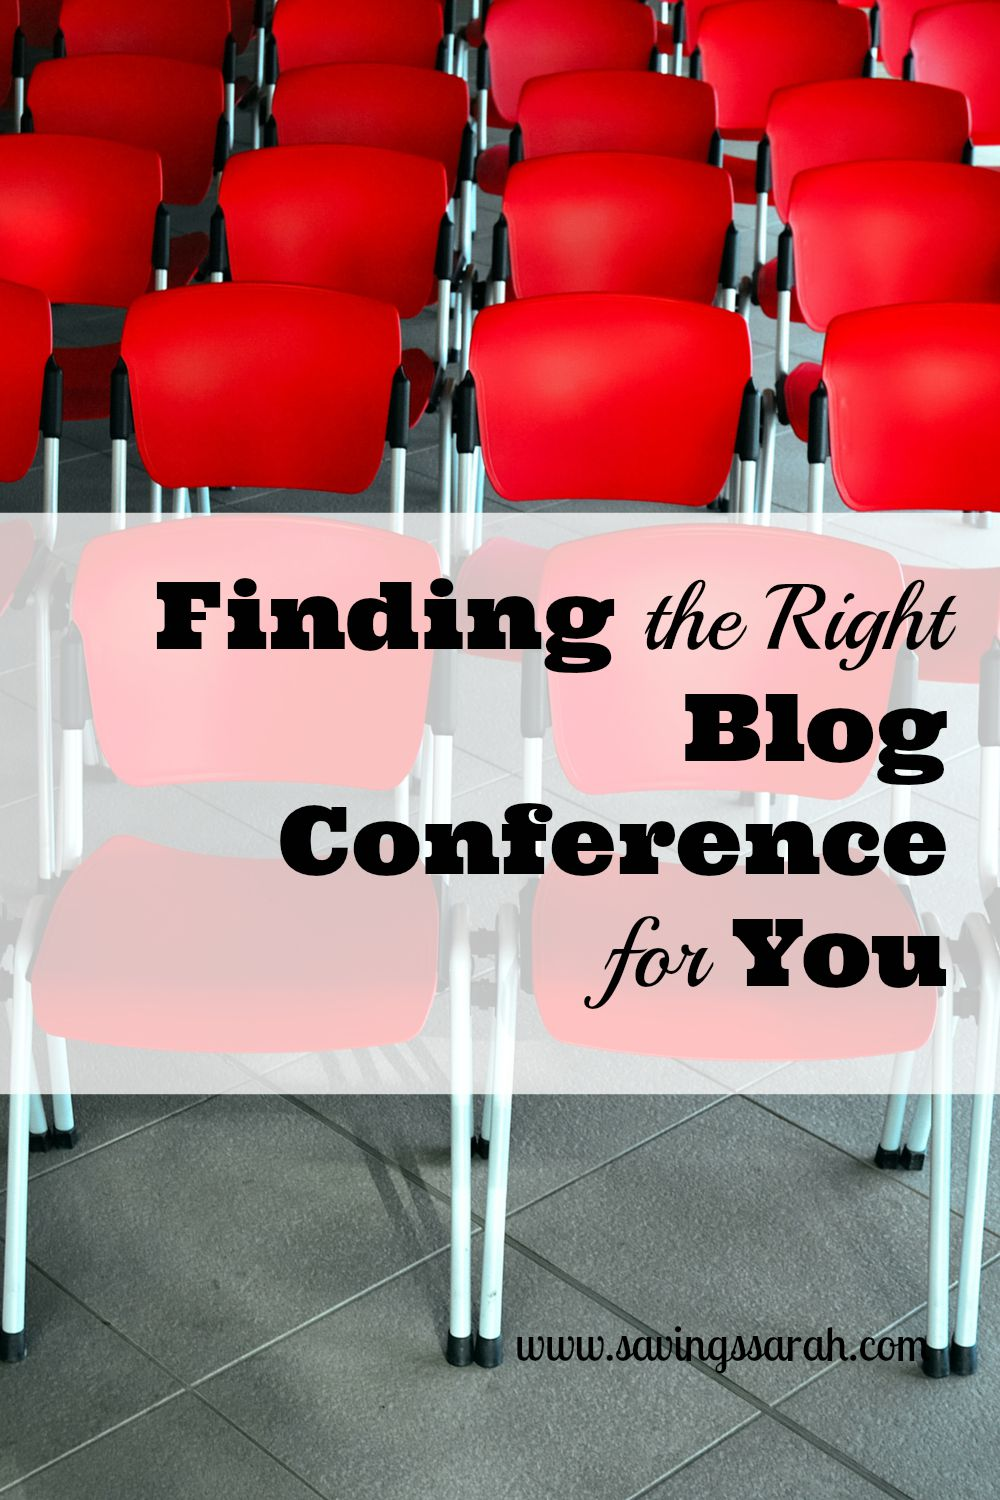 Finding the Right Blog Conference for You